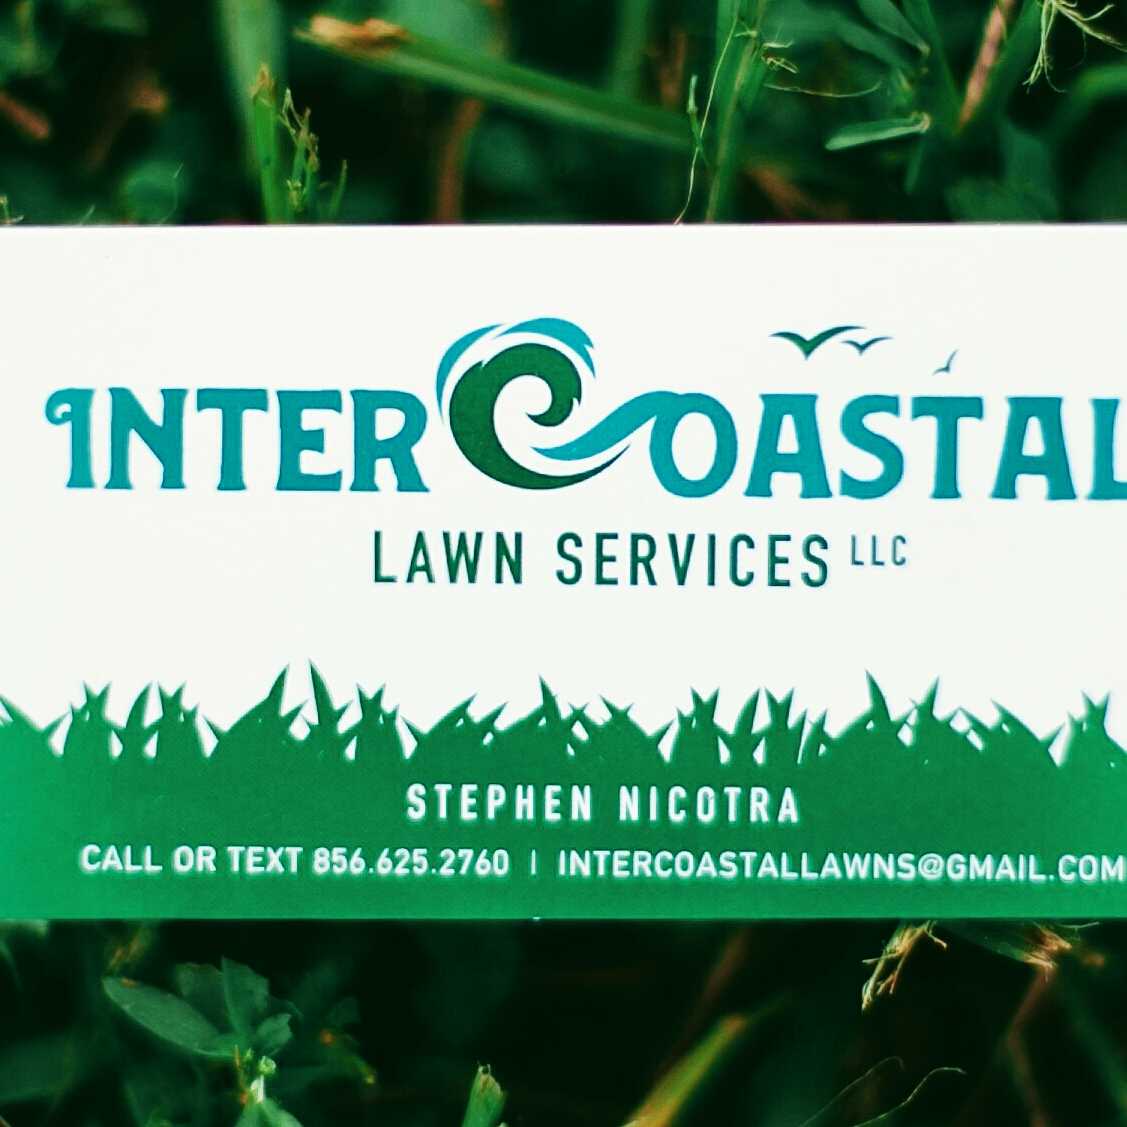 Intercoastal Lawn Services LLC